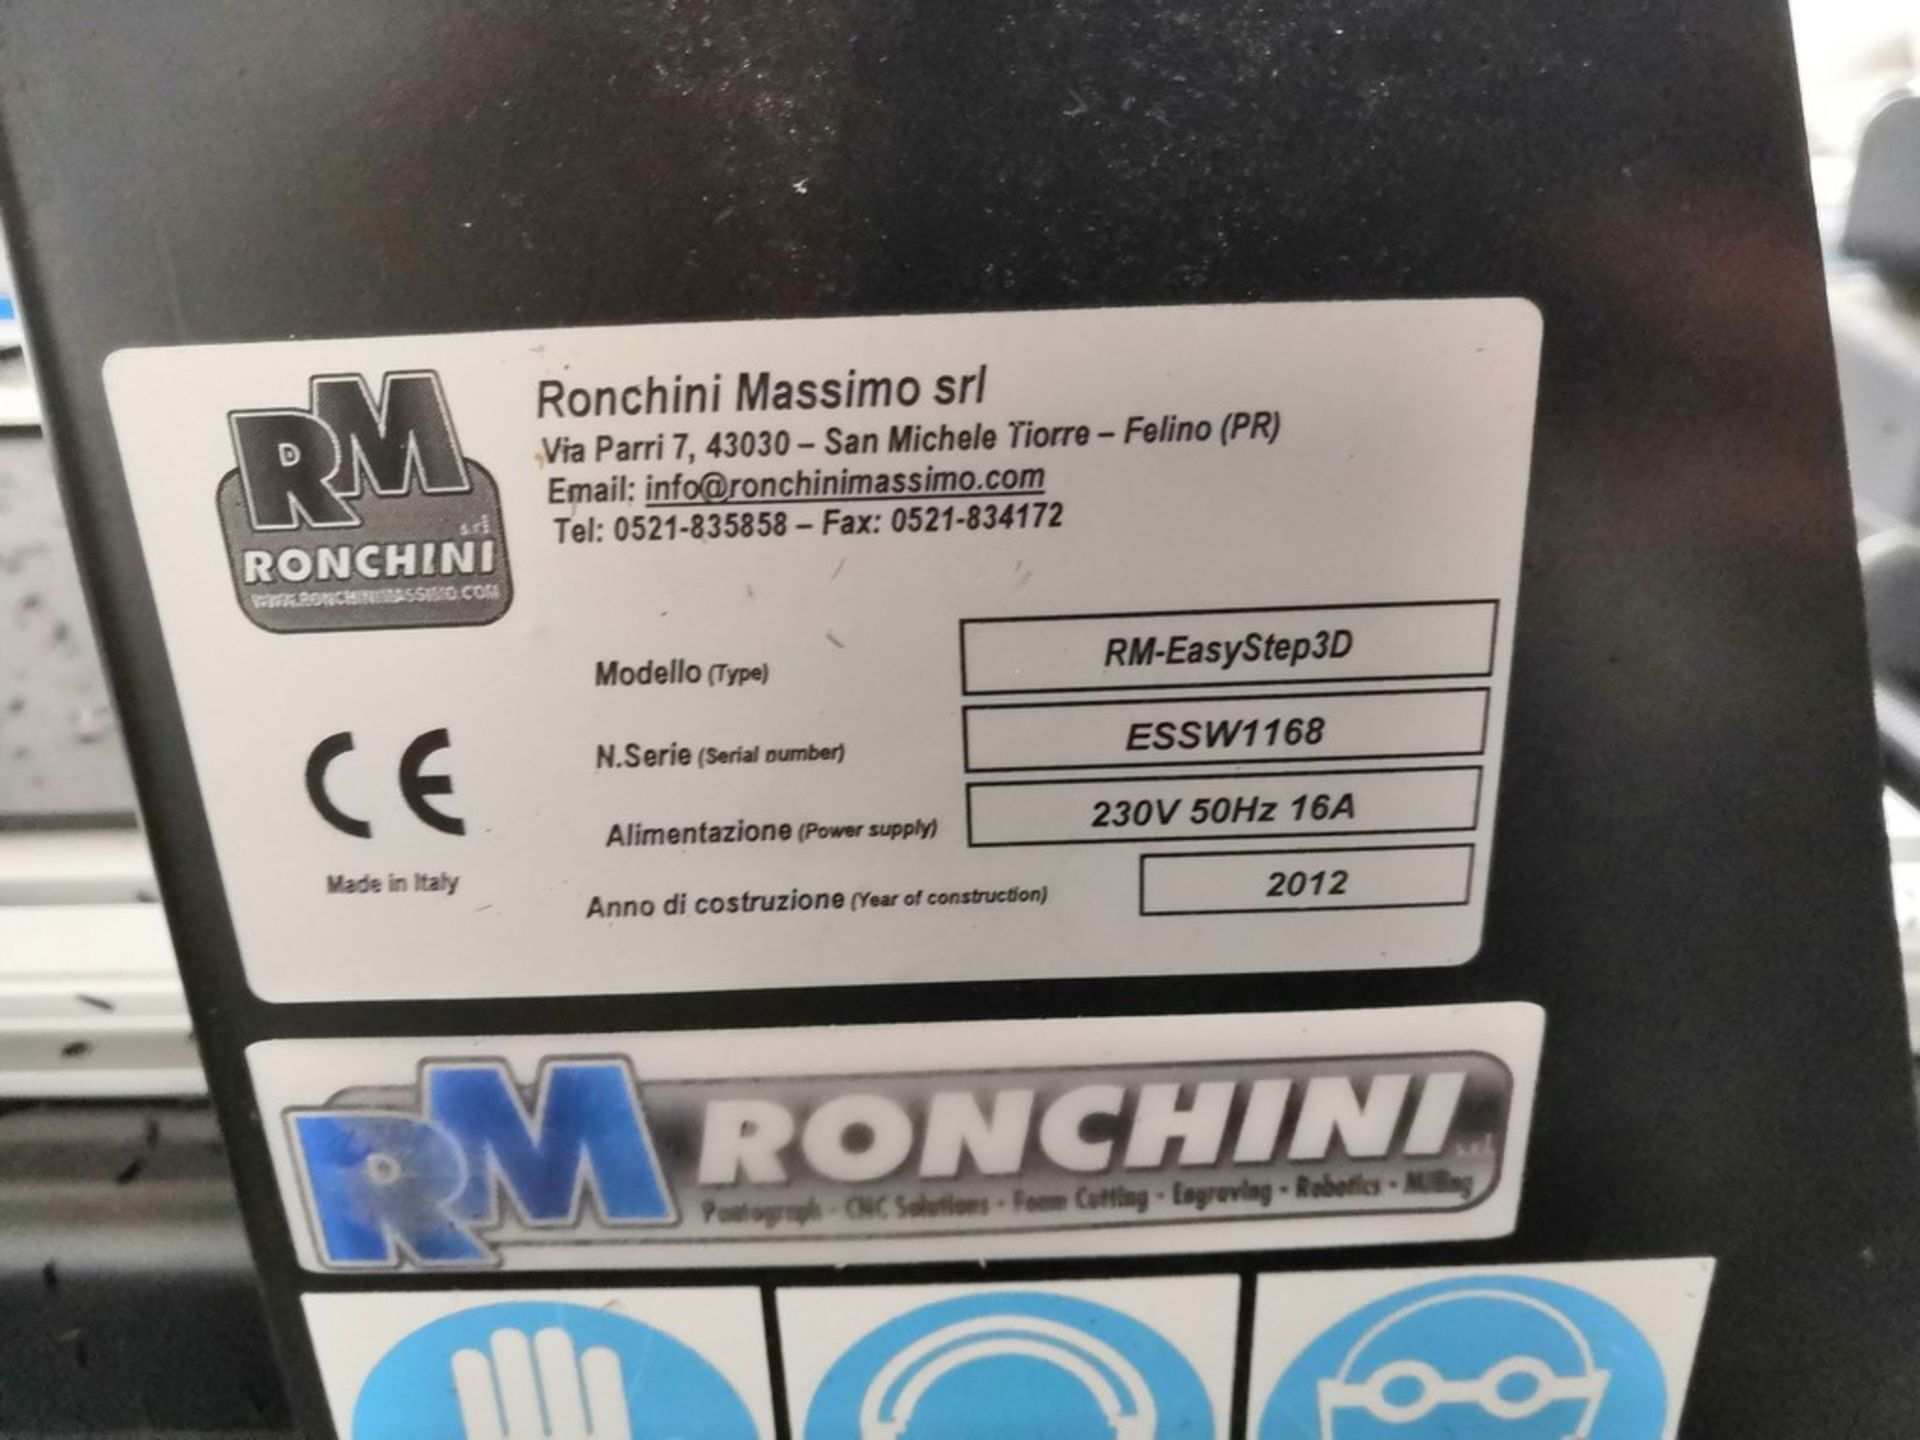 Lot 616 - N. 98 (FALLIMENTO N. 782) FRESATRICE CNC RM (RONCHINI MASSIMO) EASYSTEP 3D 800, SN. ESSW1168, ANNO